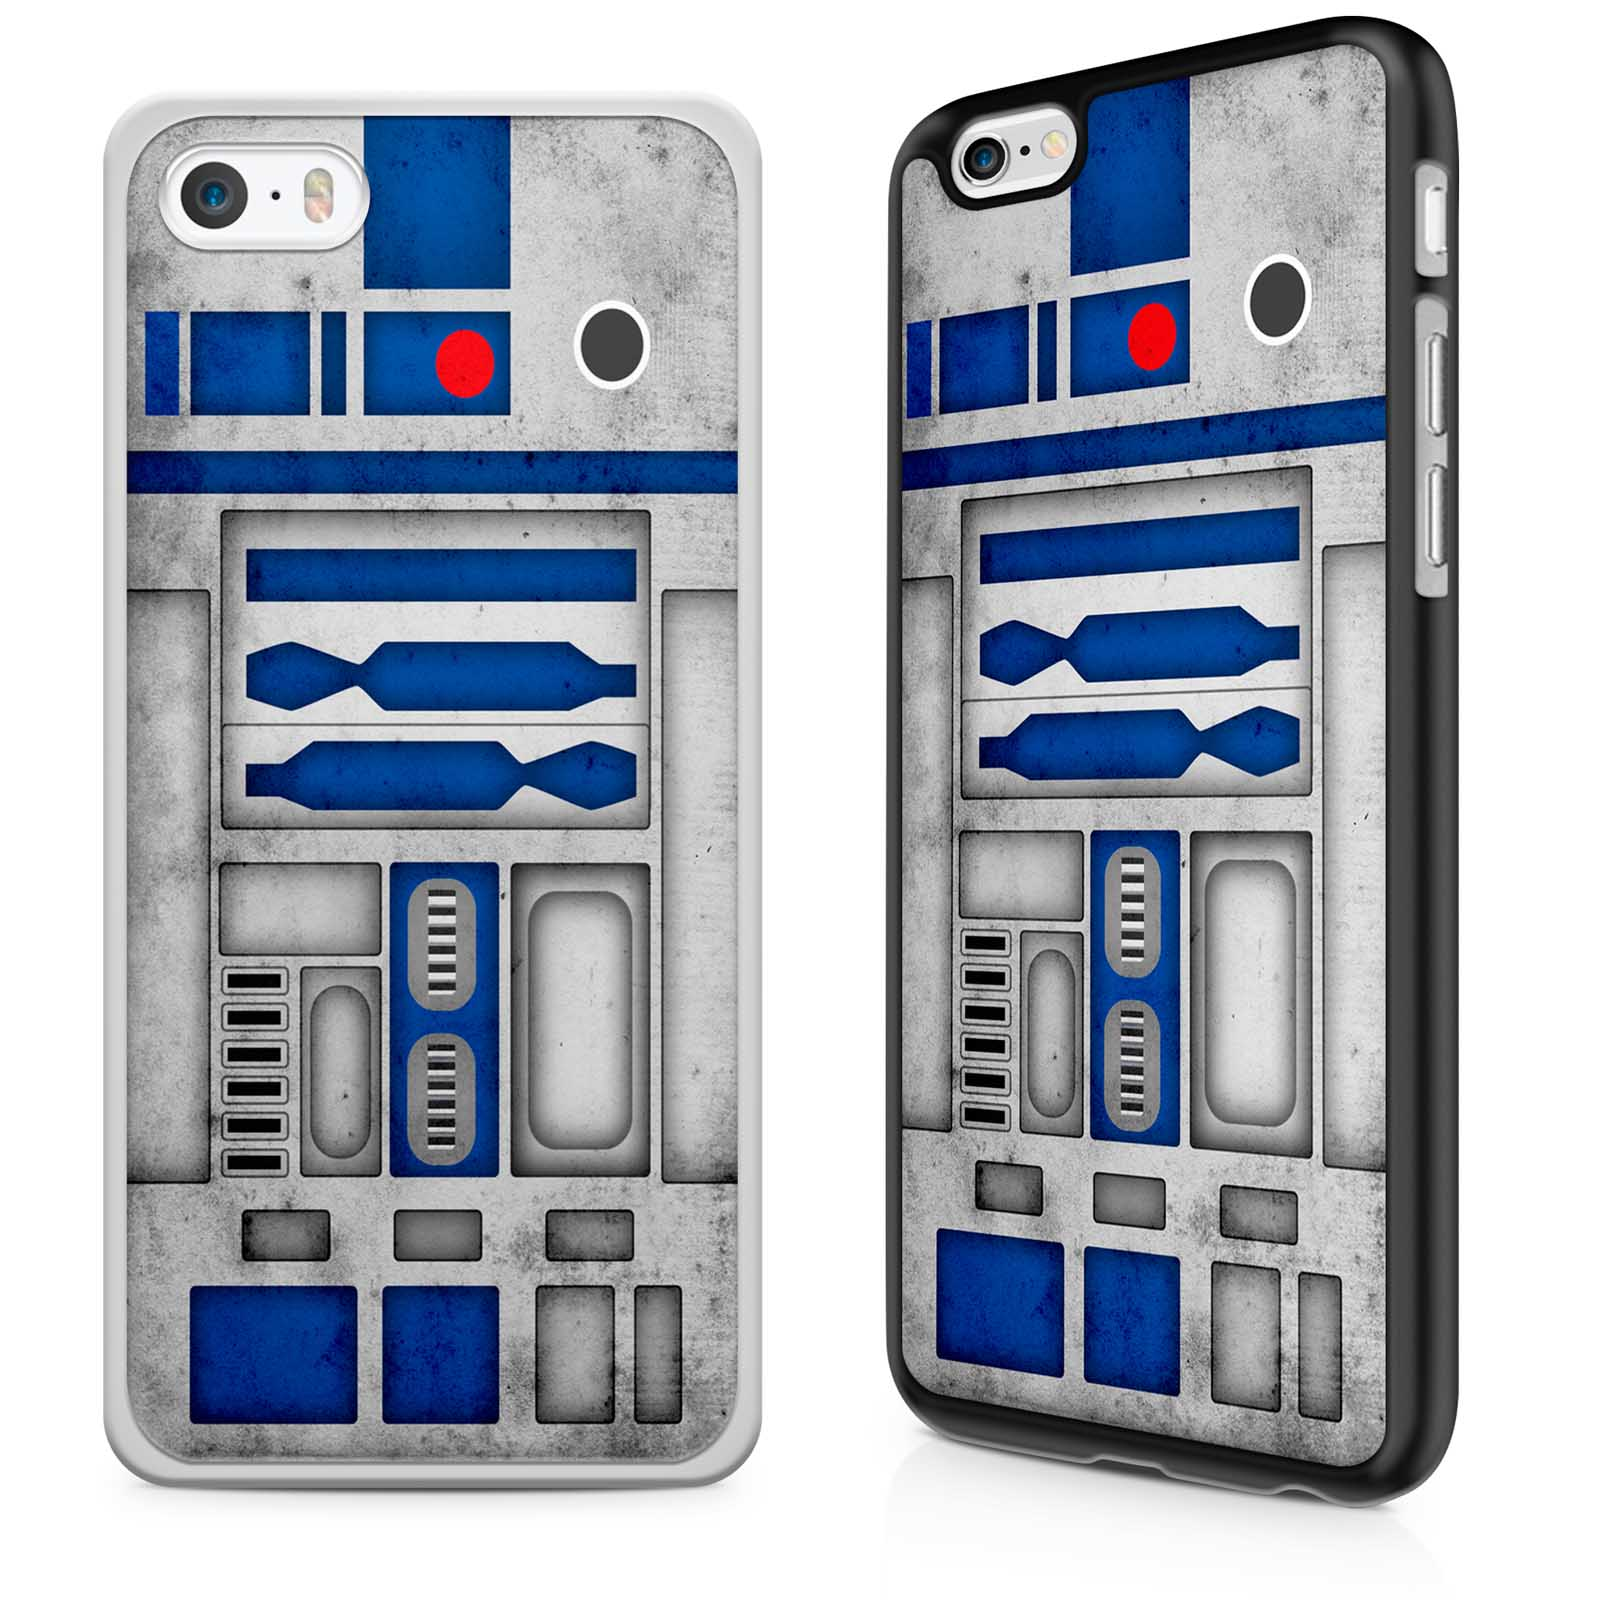 New D-Tech Cases for Android Phones ... - Disney Parks Blog